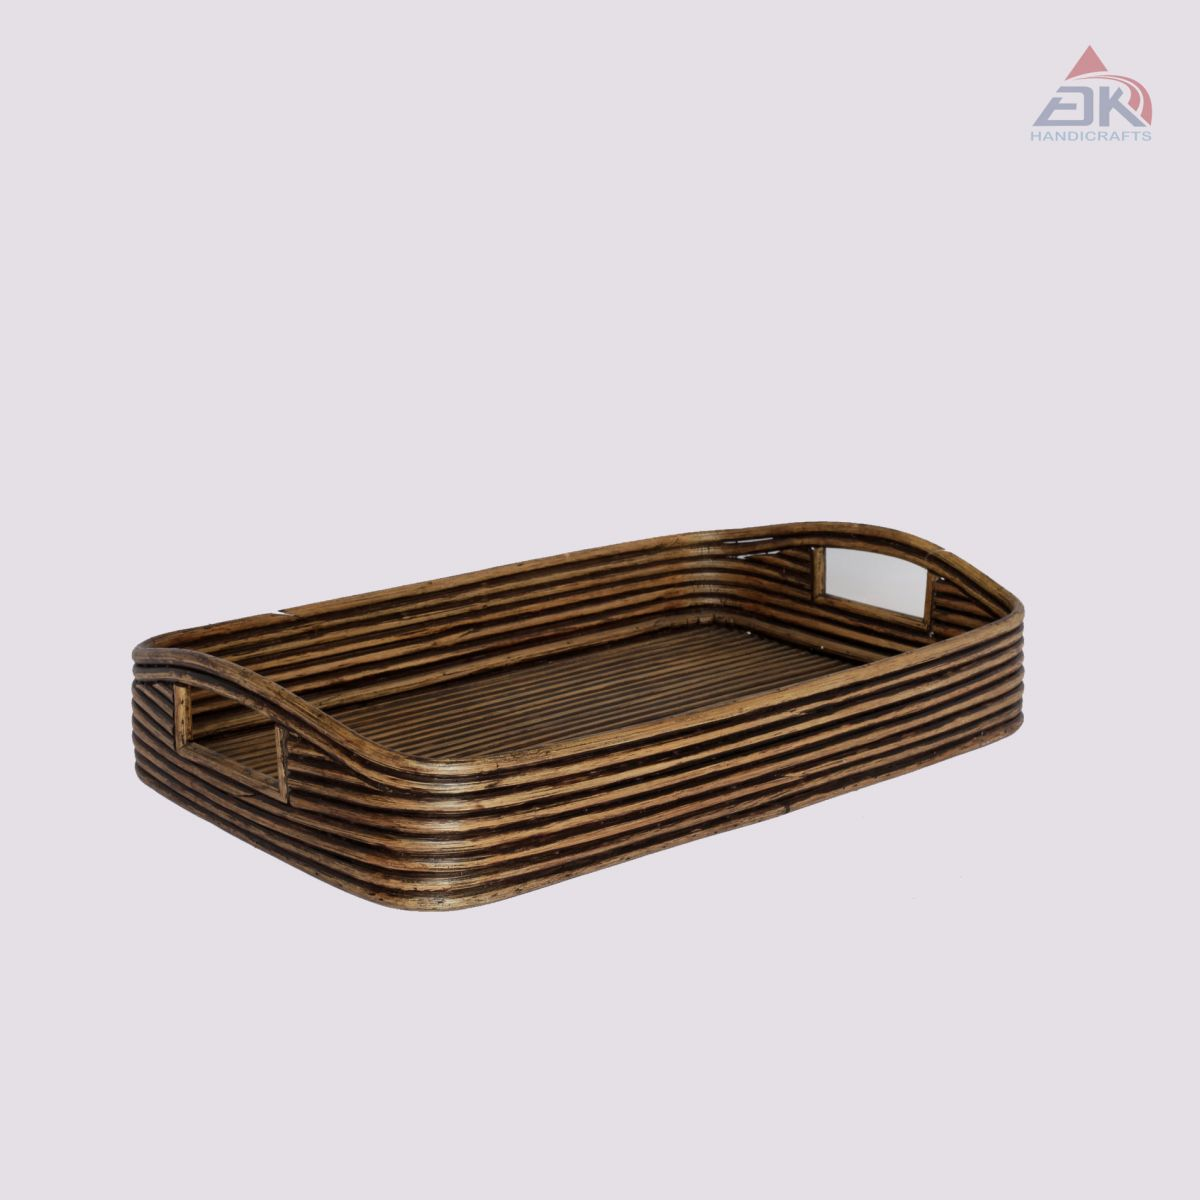 Tray Rattan Coiled # DK120